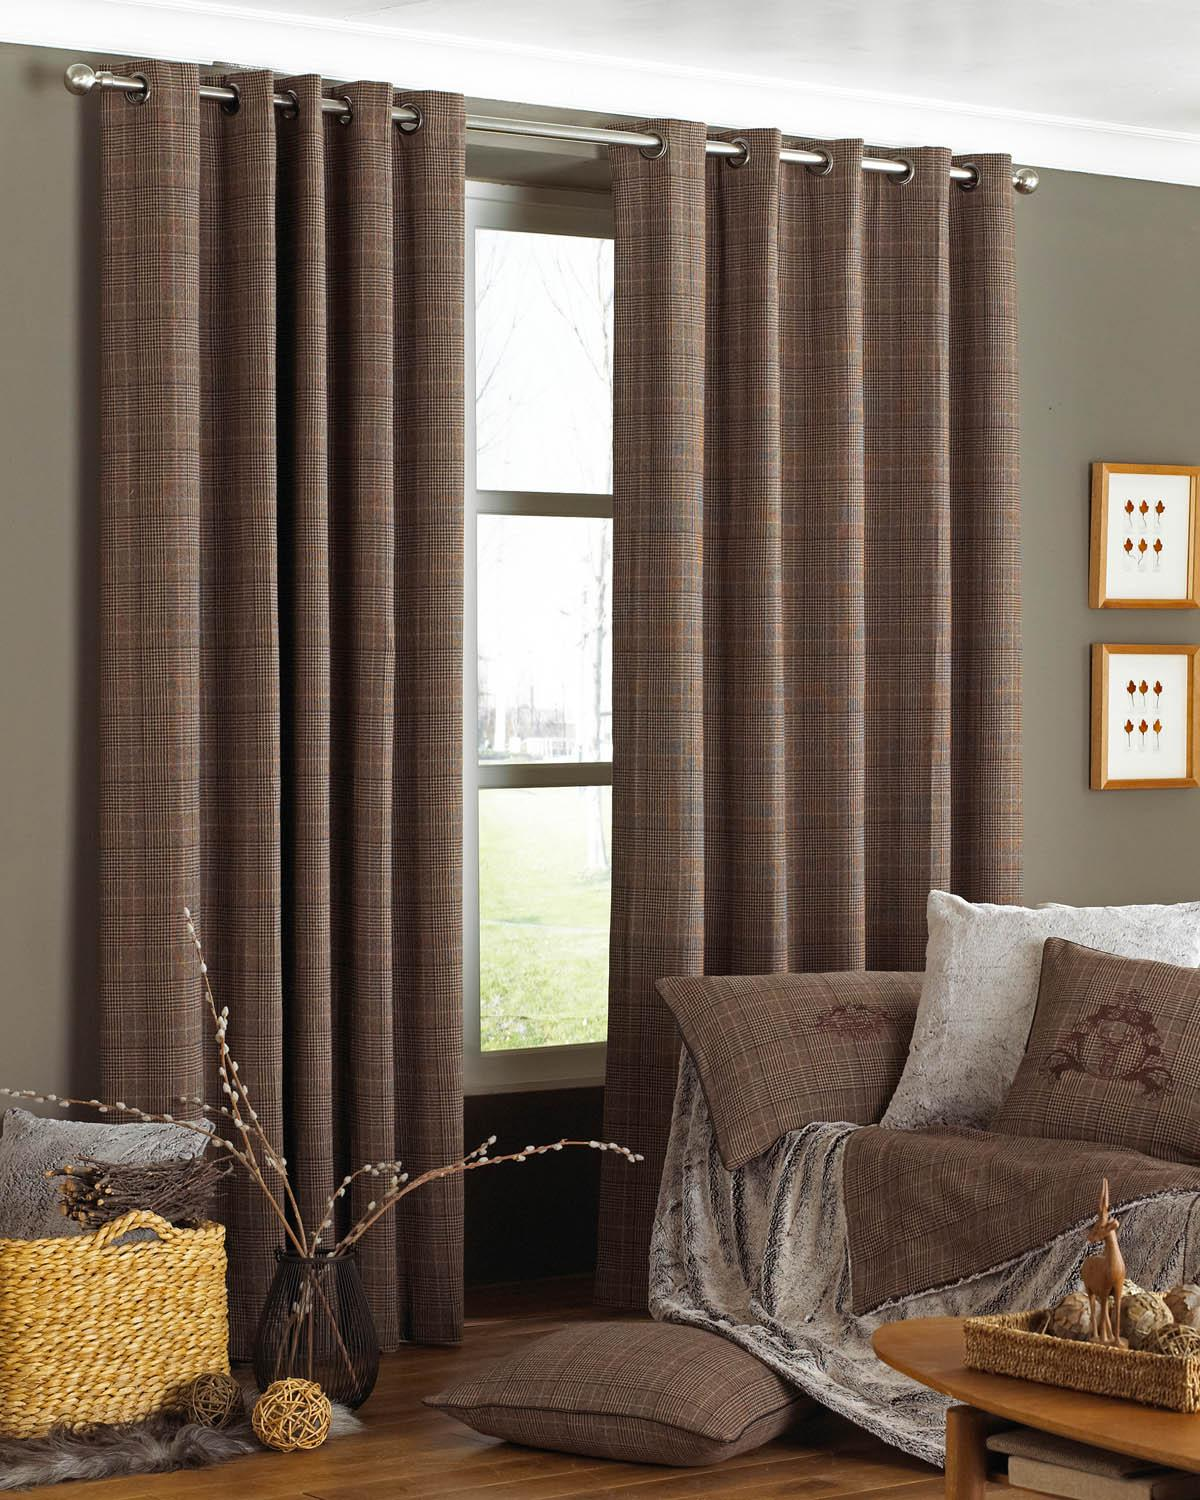 Courcheval Ready Made Eyelet Curtains